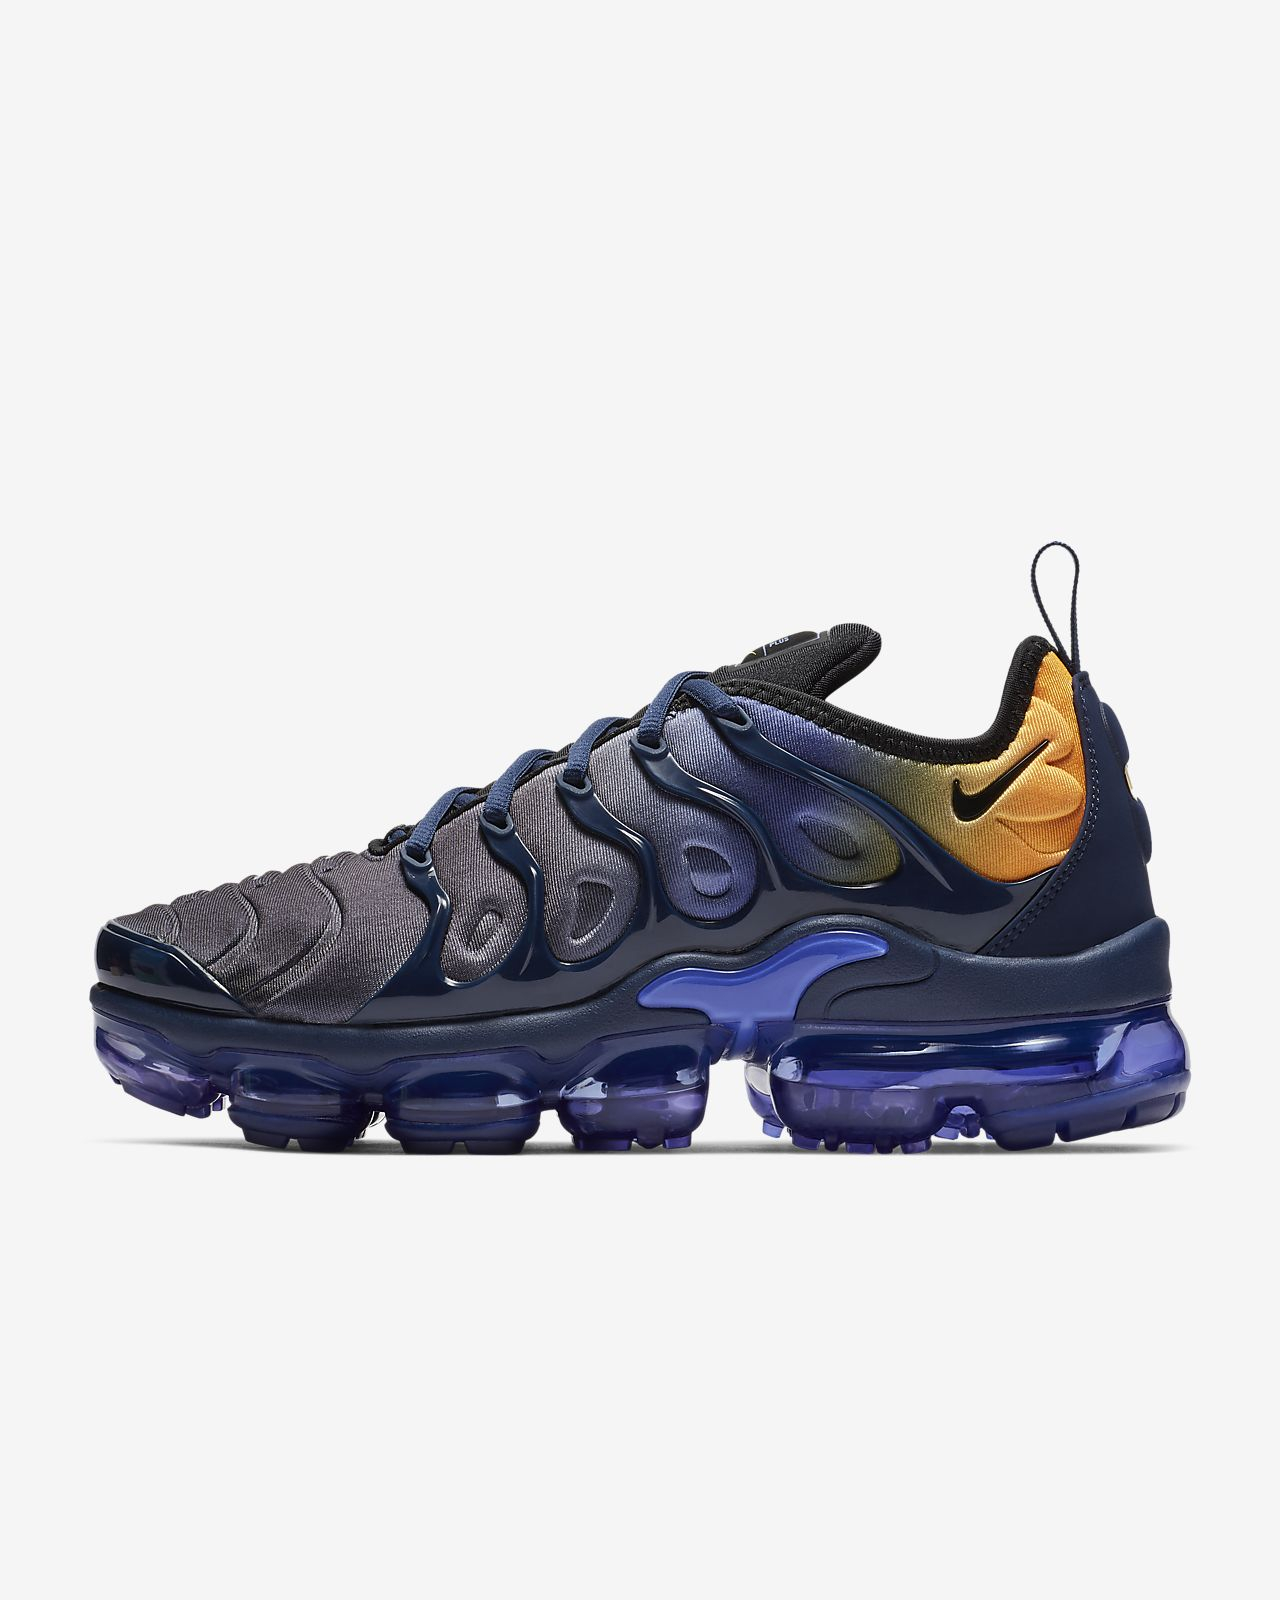 7f4a6553f07 Nike Air VaporMax Plus Women s Shoe. Nike.com